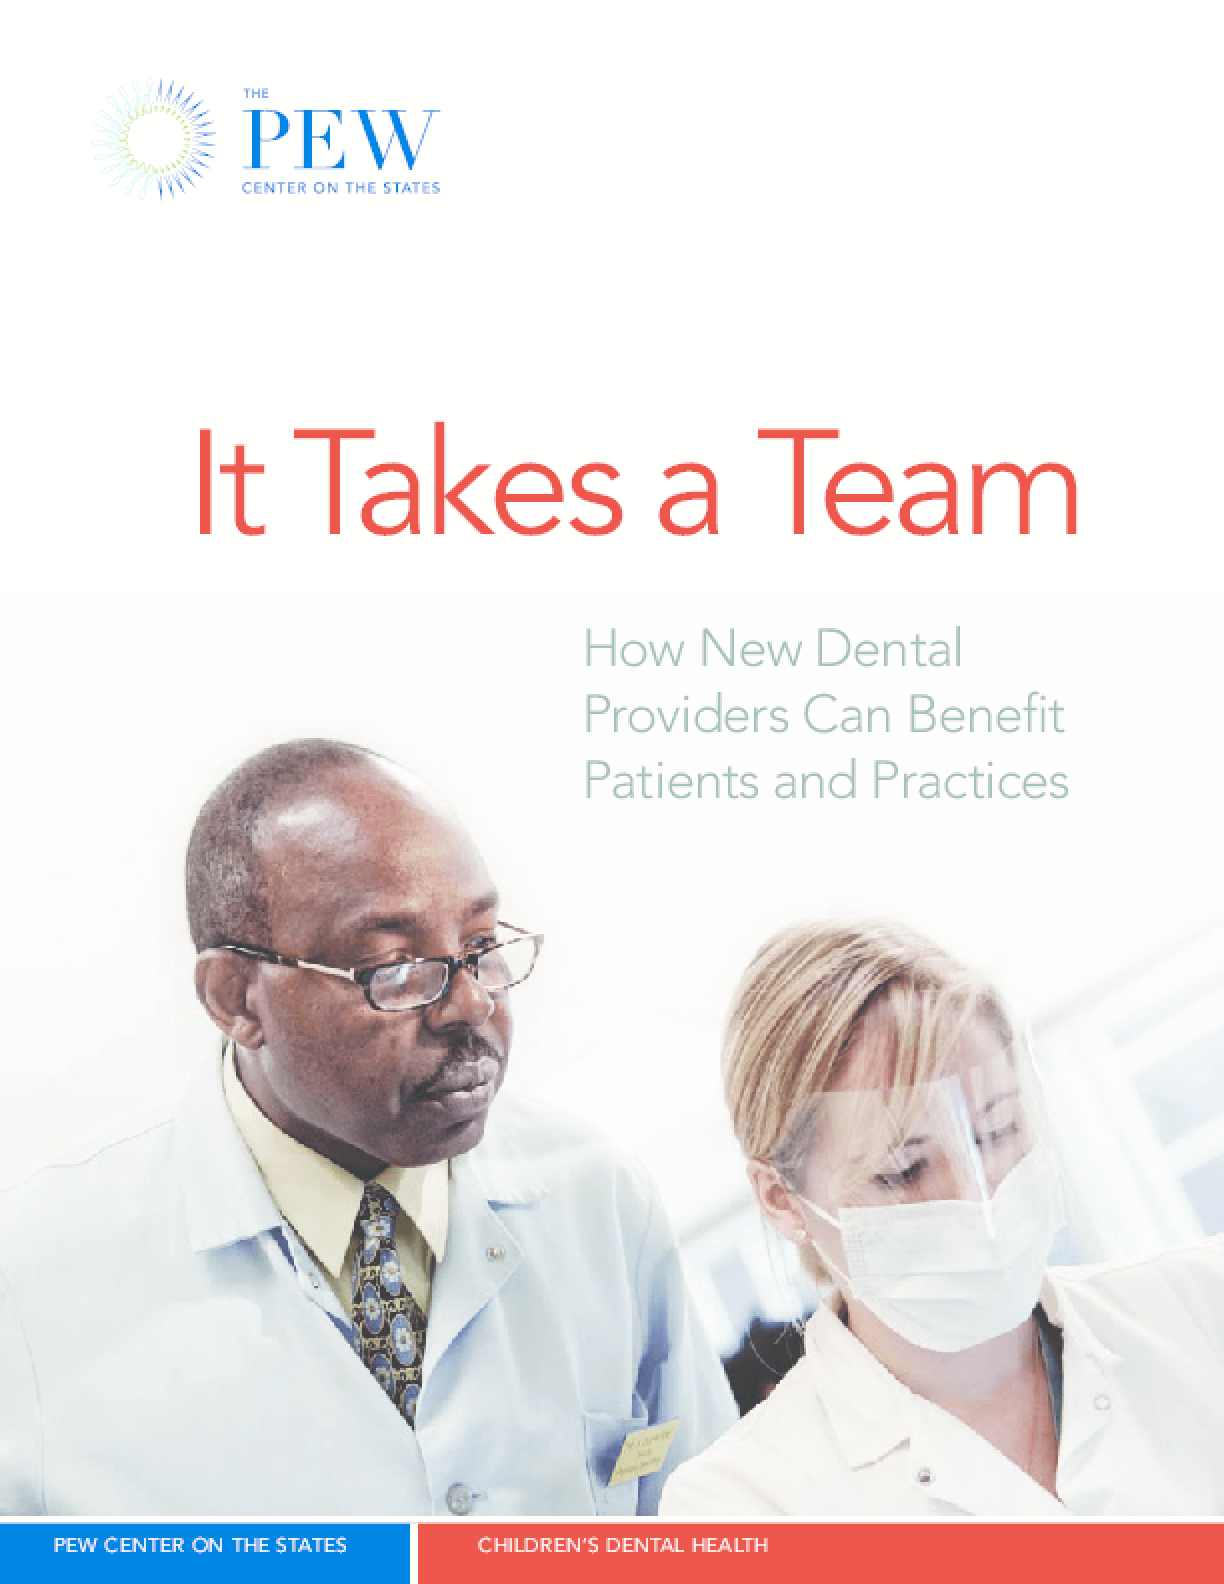 It Takes a Team: How New Dental Providers Can Benefit Patients and Practices